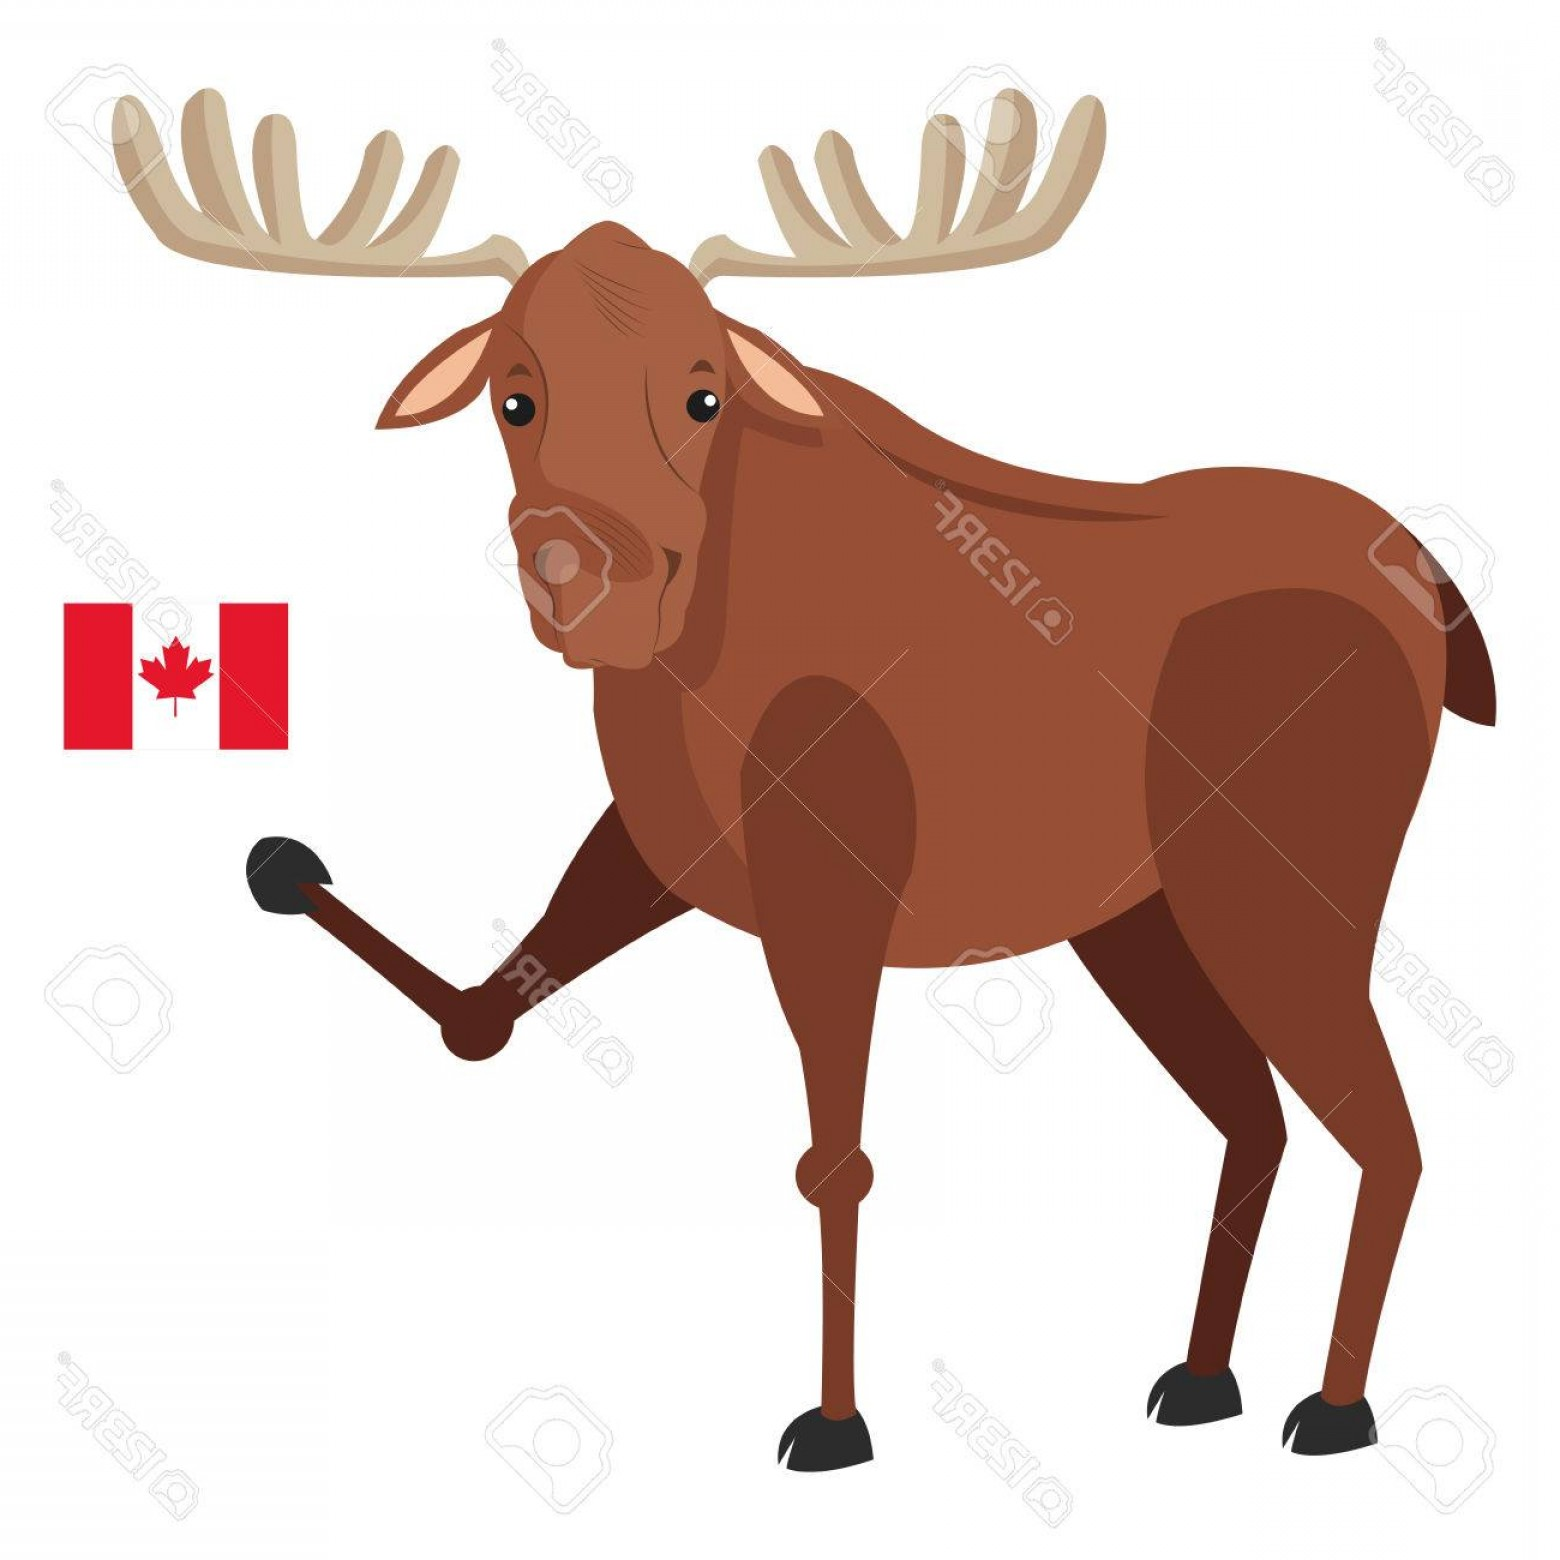 Alaska Moose Vectors: Photostock Vector Flat Design Single Moose With Canadian Flag Icon Illustration